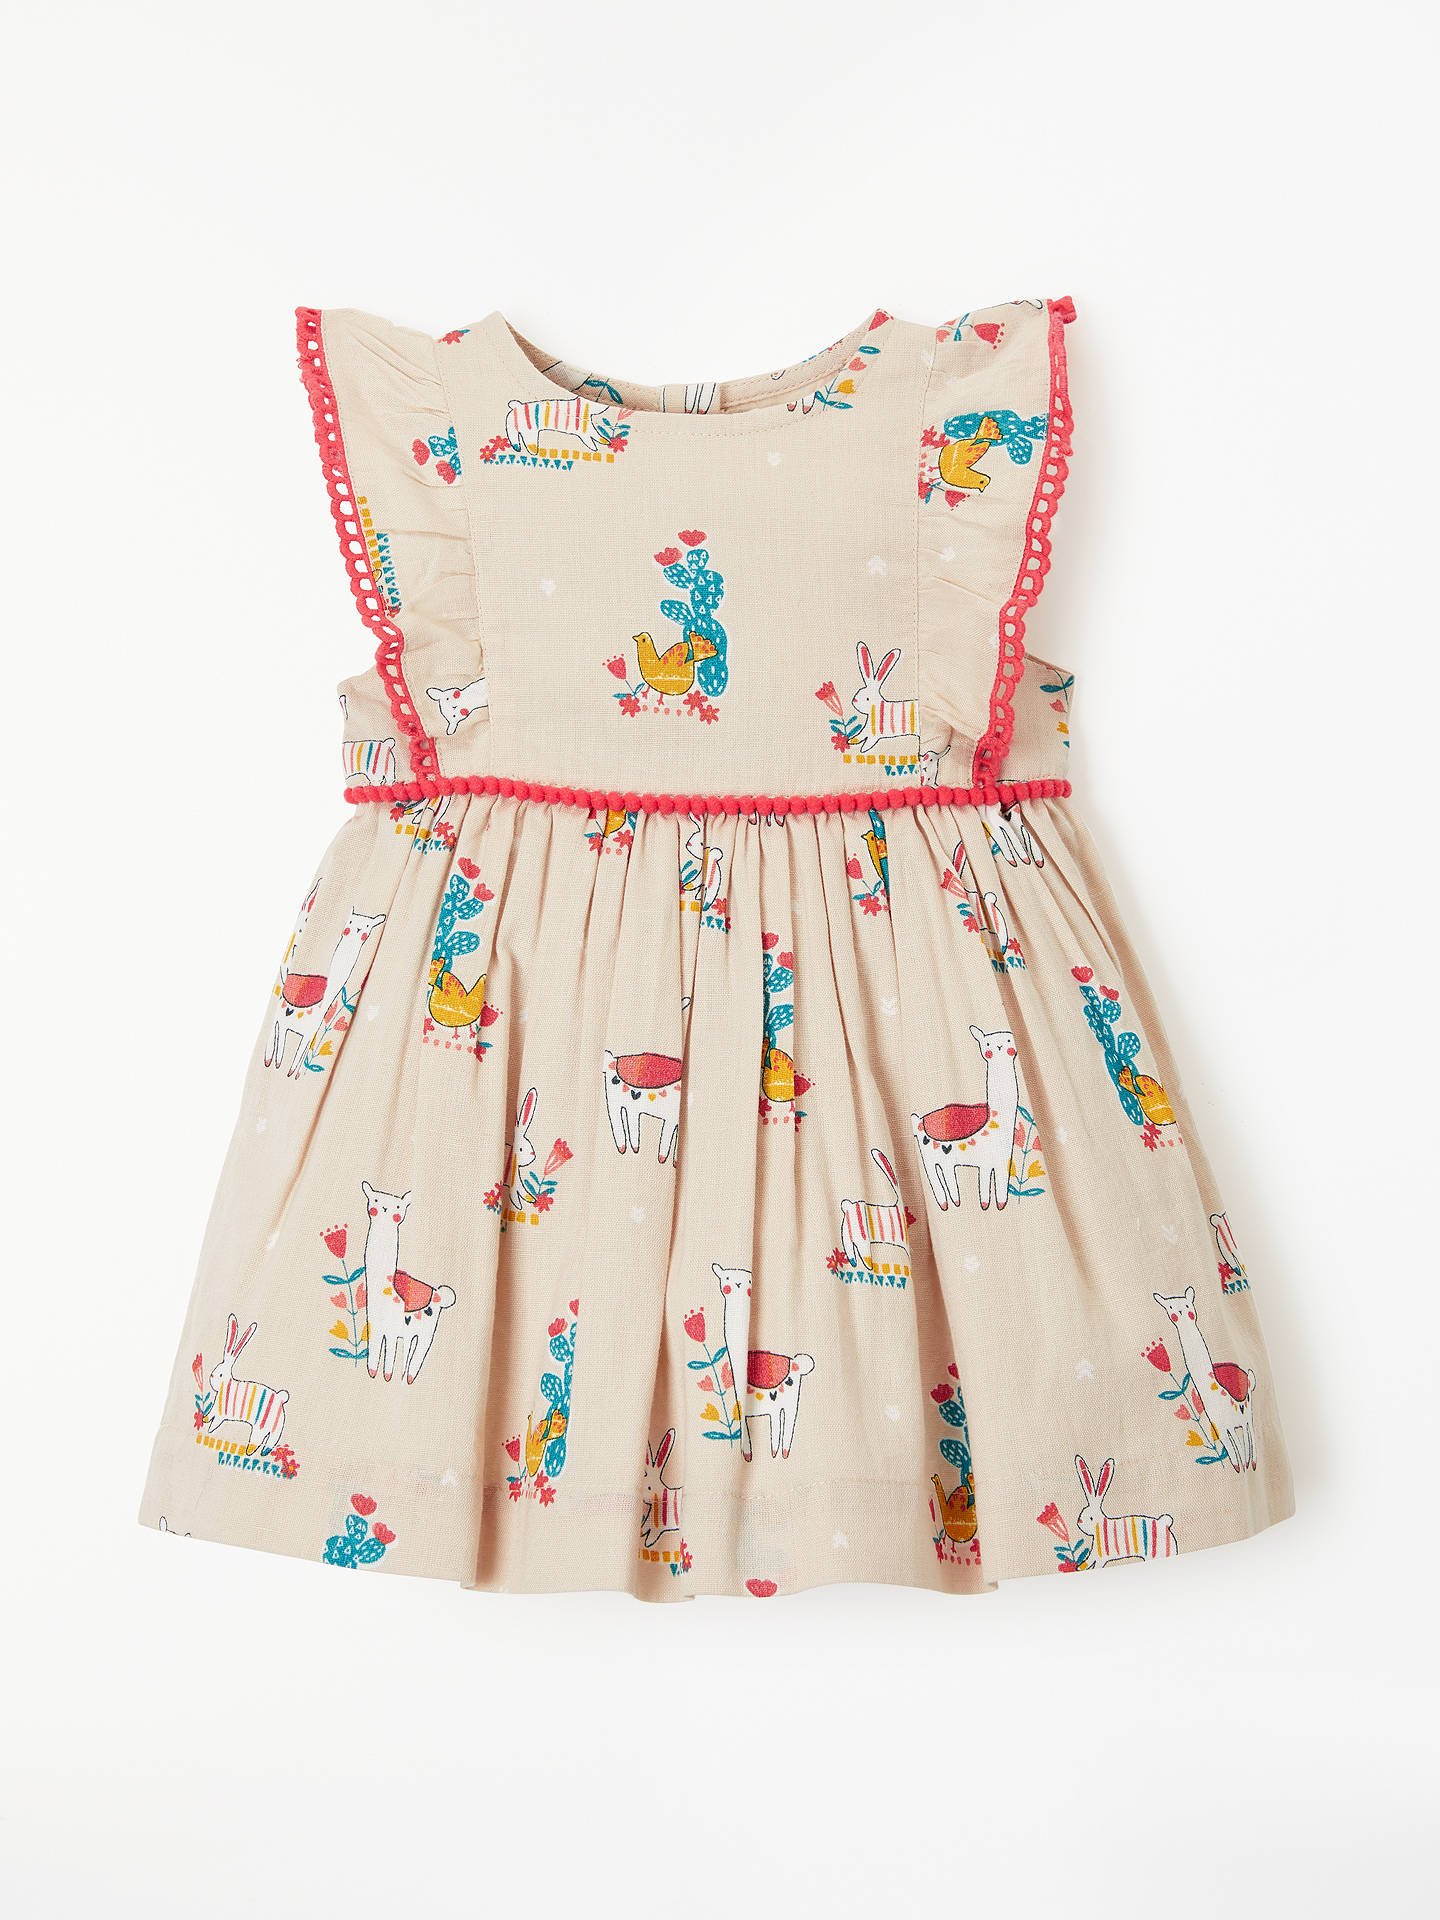 BuyJohn Lewis & Partners Baby Llama and Friends Dress, Multi, 0-3 mths Online at johnlewis.com